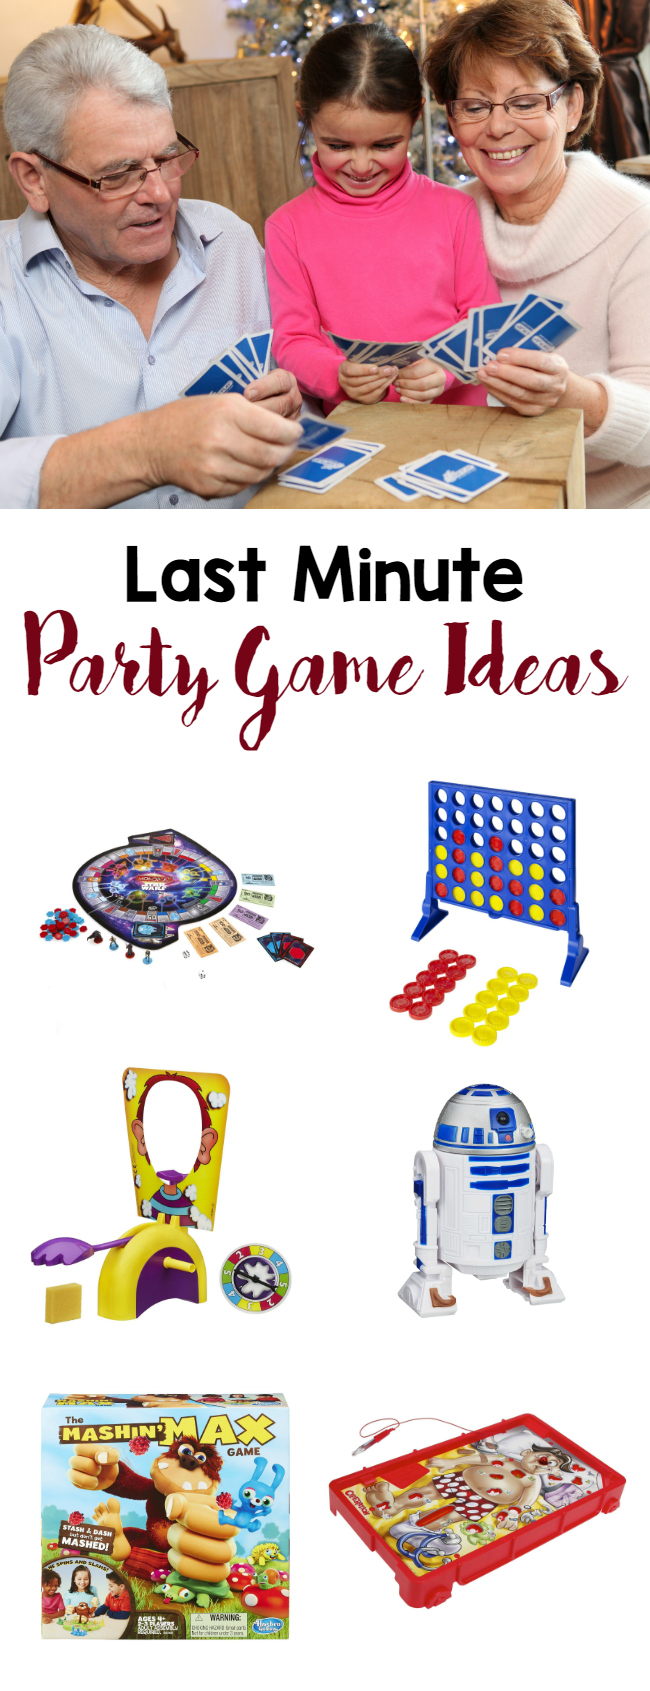 Last Minute Party Game Ideas